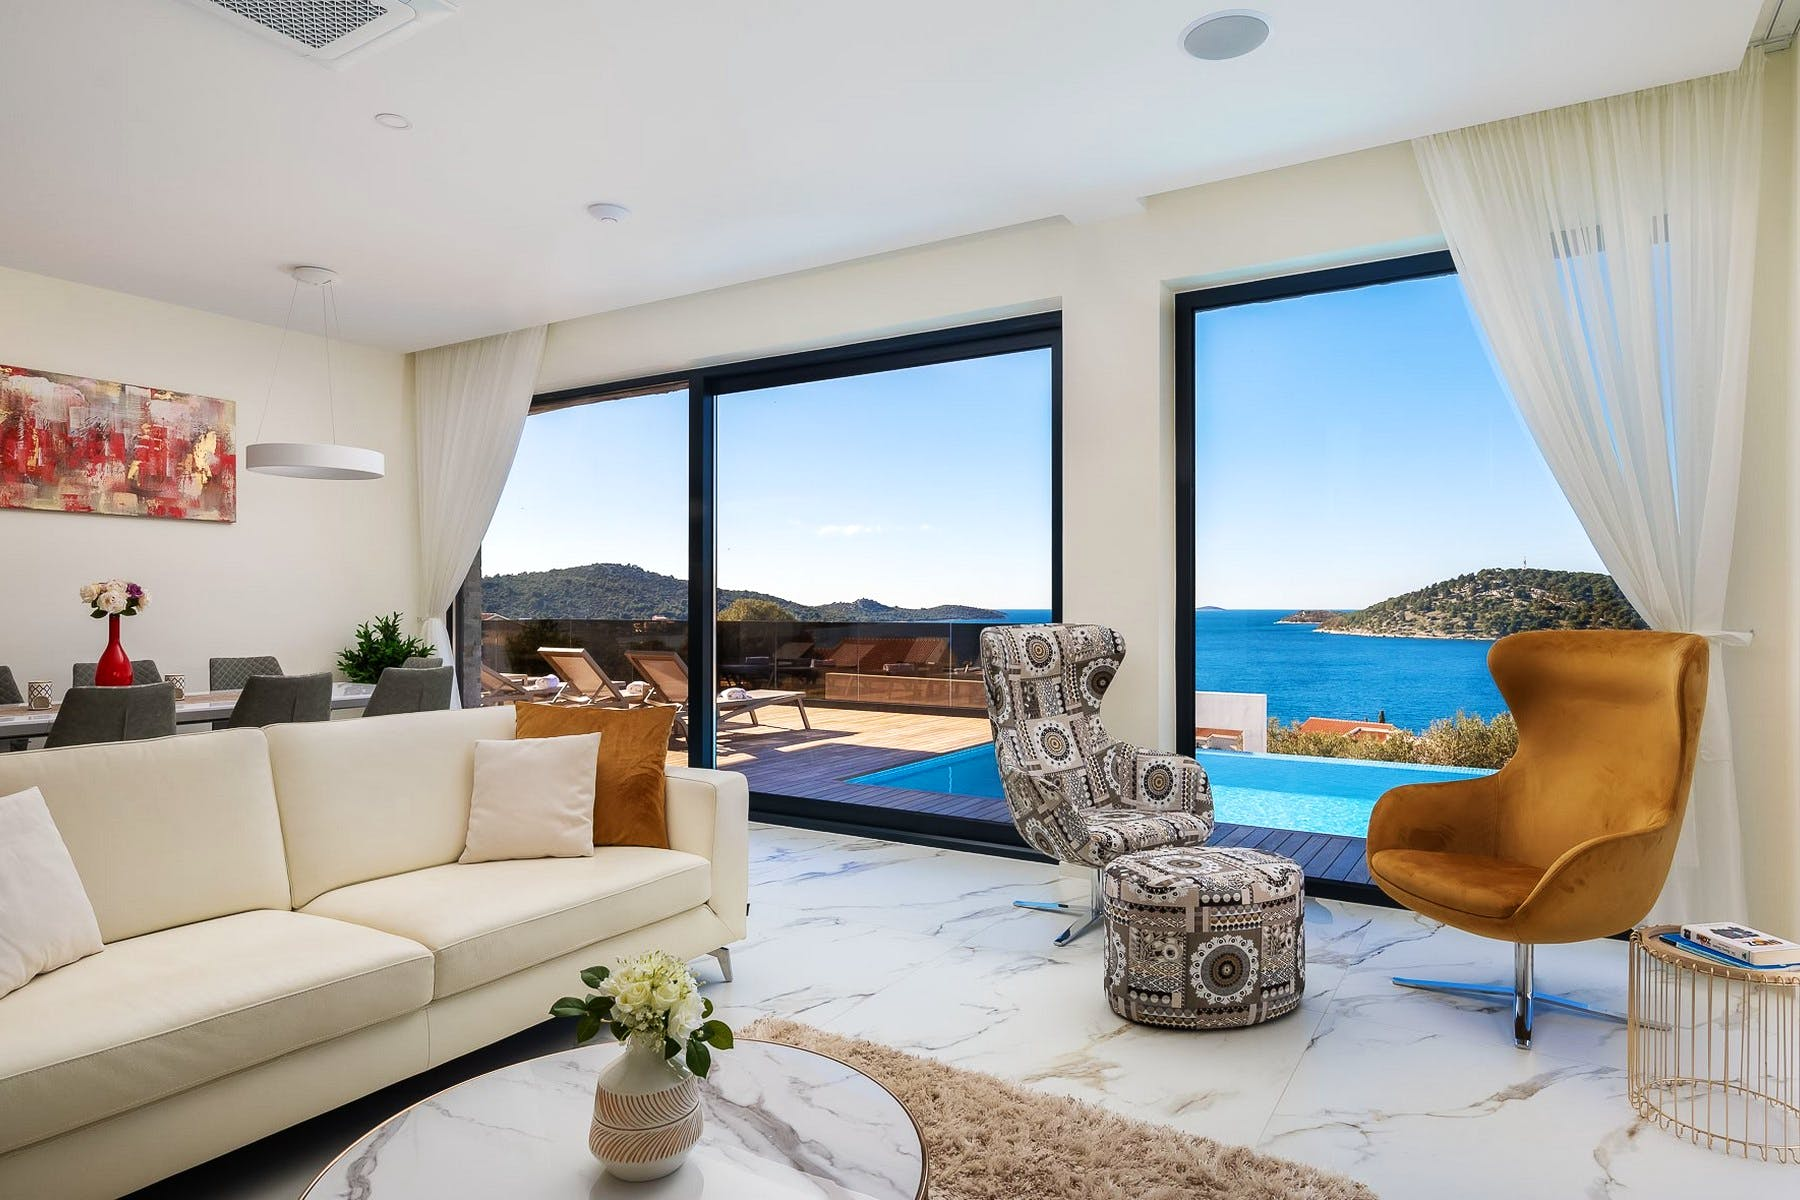 Moden and comfortable living room with sea view